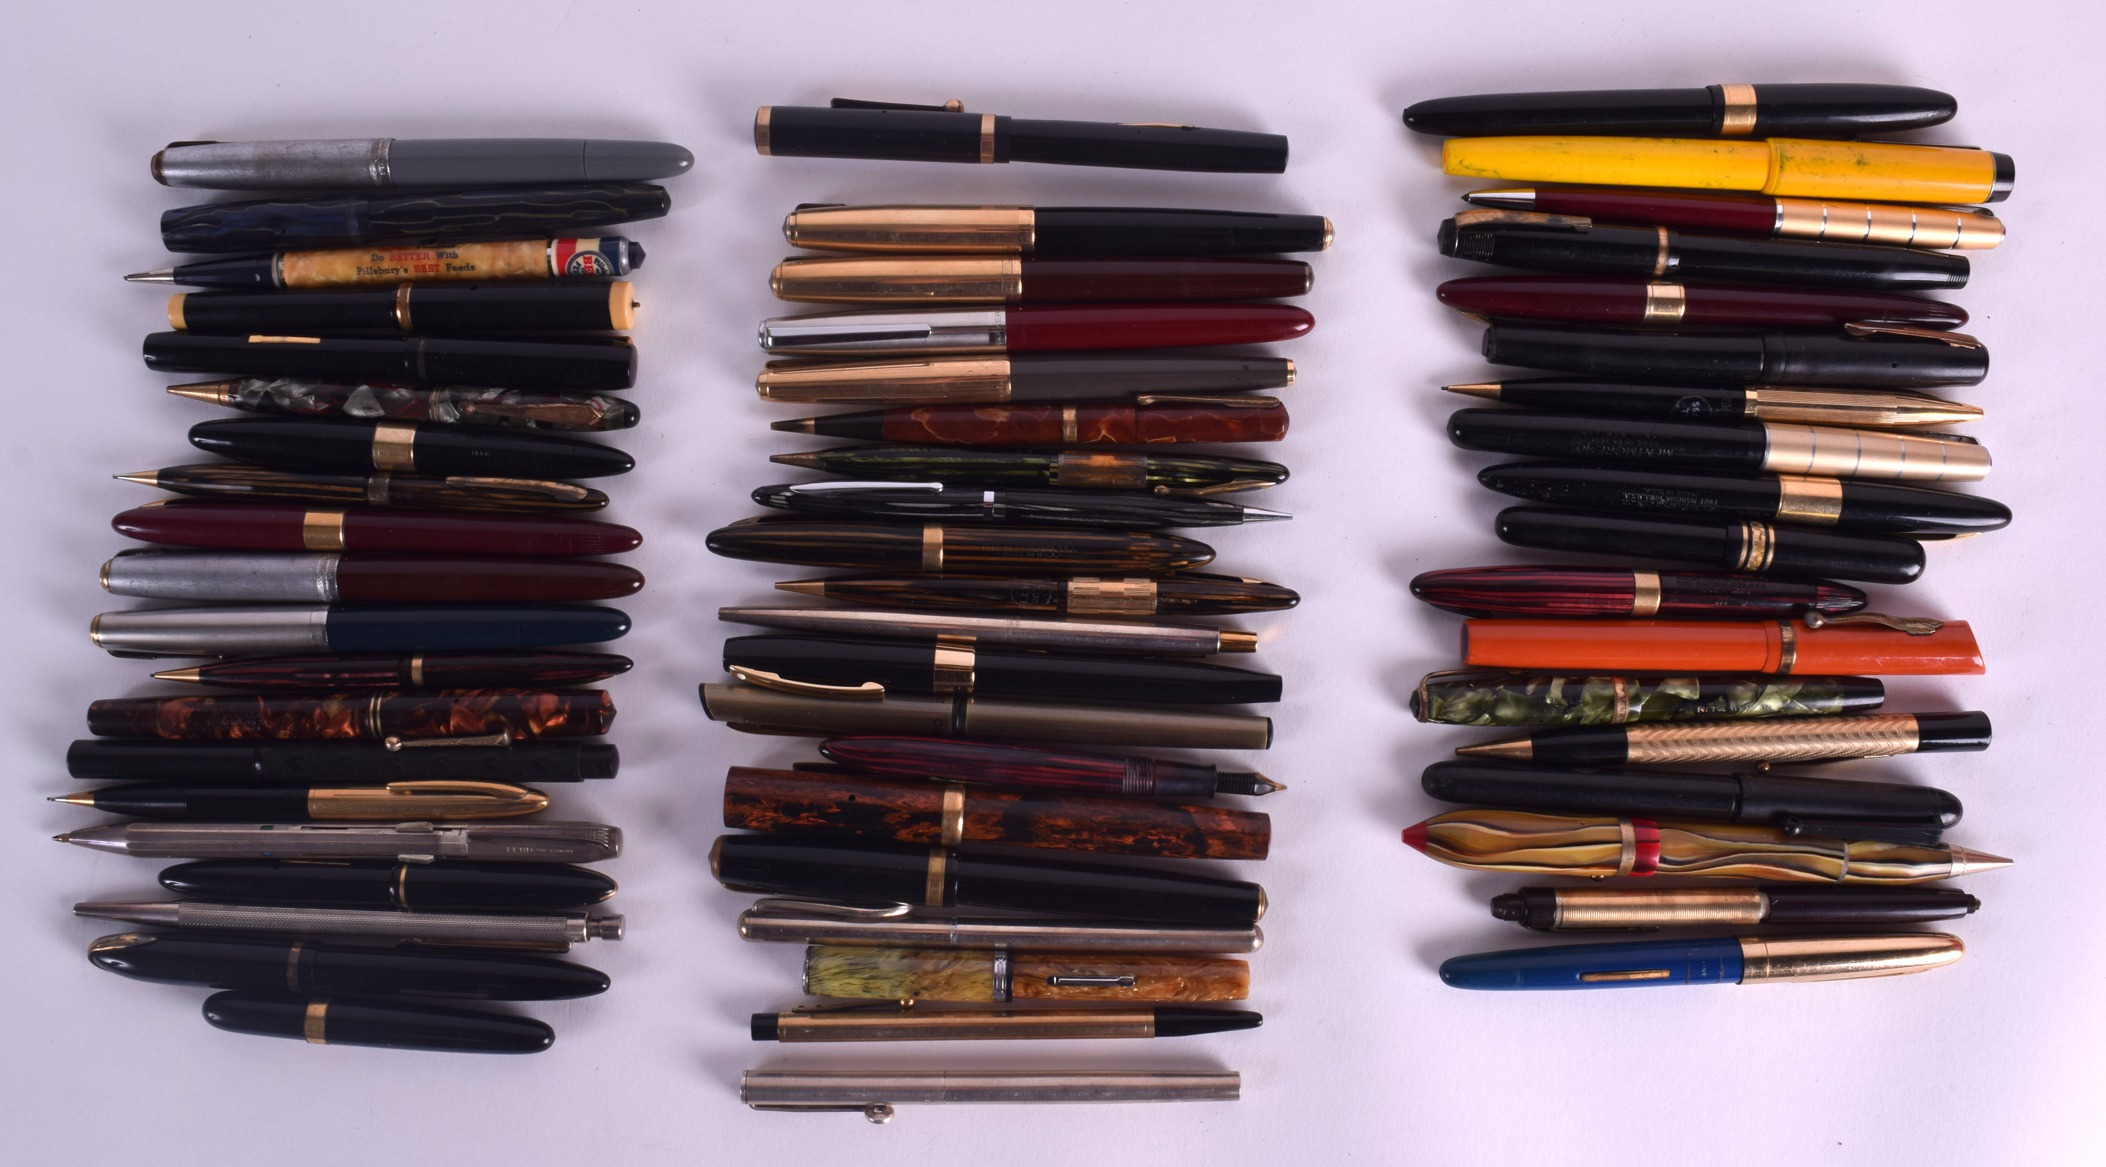 Lot 870 - A COLLECTION OF VARIOUS PENS including Bloomingdales, Clip cap ideal, Sheaffer, Majestic etc, ten